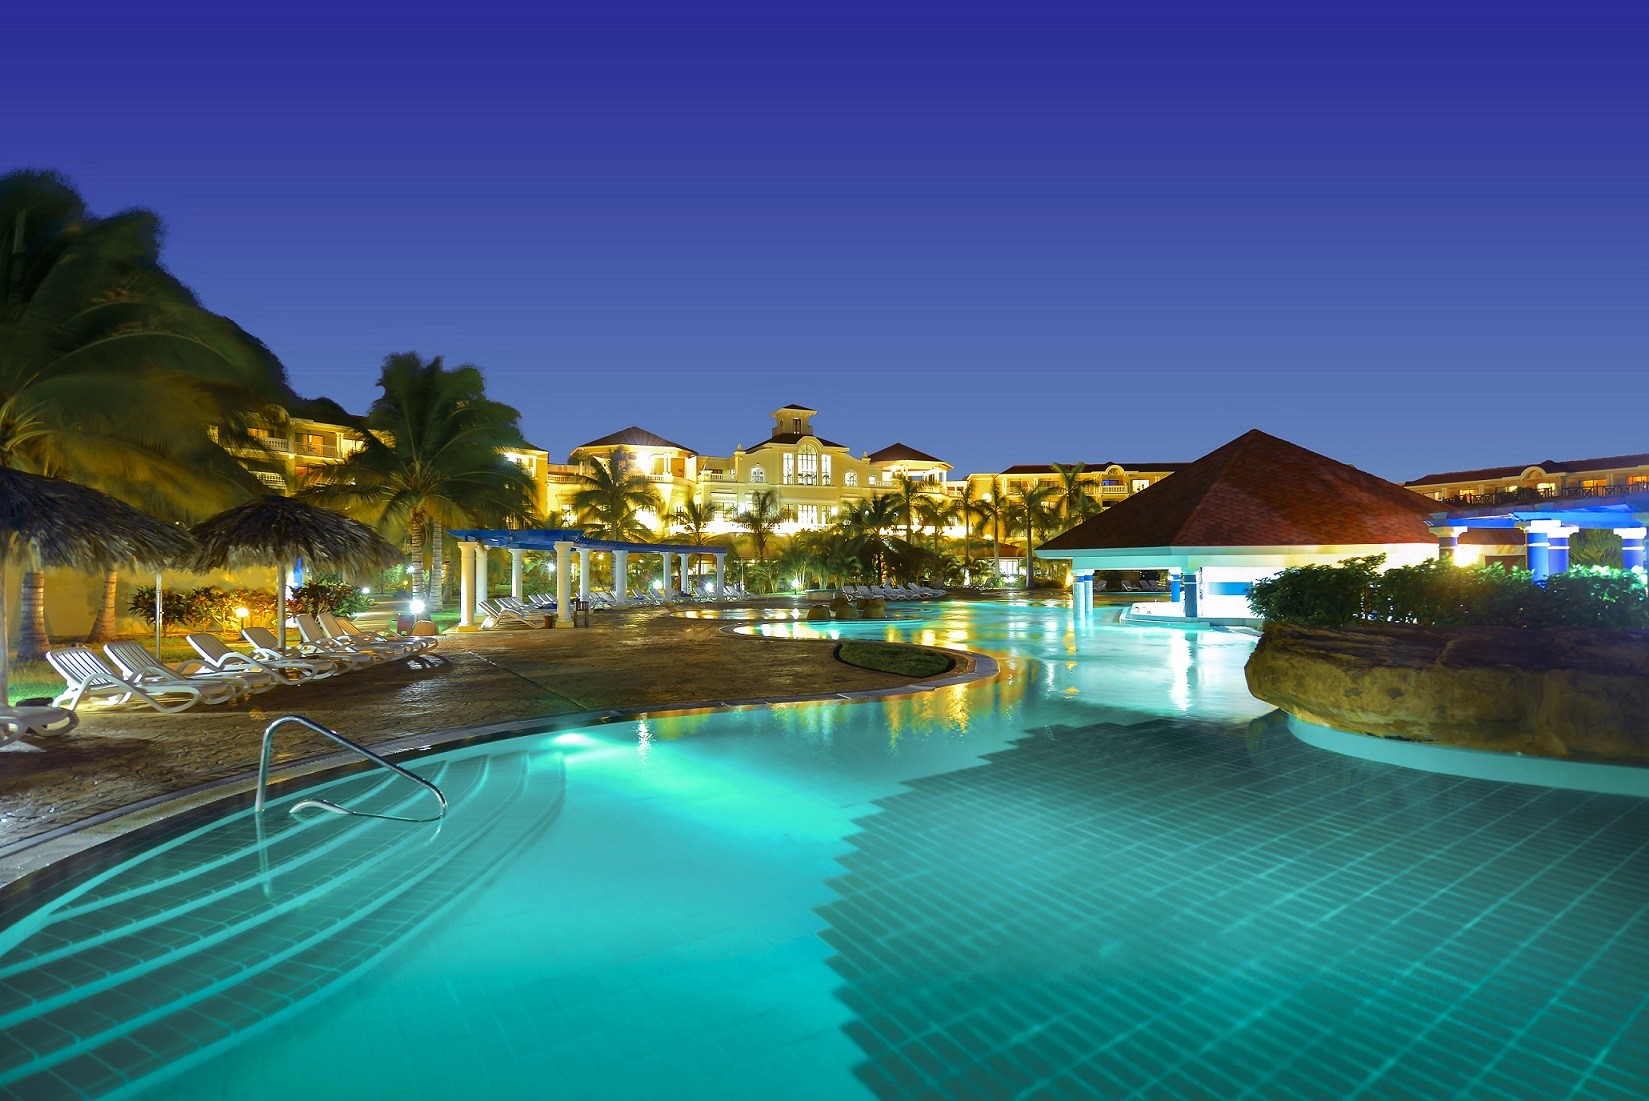 The Luxury Cuban Resort Highlights 814 Ious Guestrooms 6 Pools 4 And 2 Children Nightclub Theater 5 Restaurants Several Bars